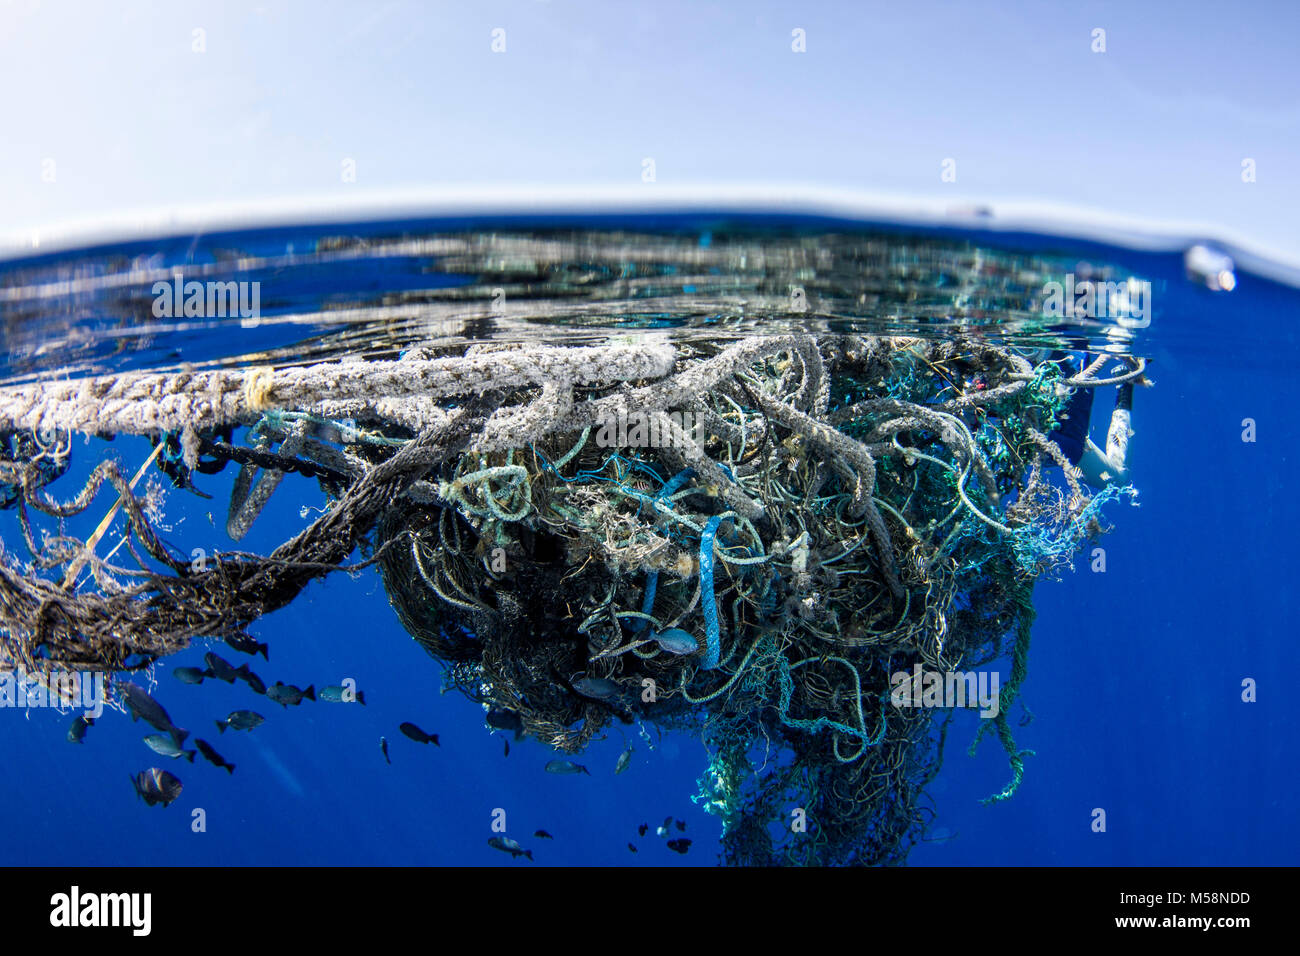 Currents accumulate marine debris in areas around the global ocean. Stock Photo